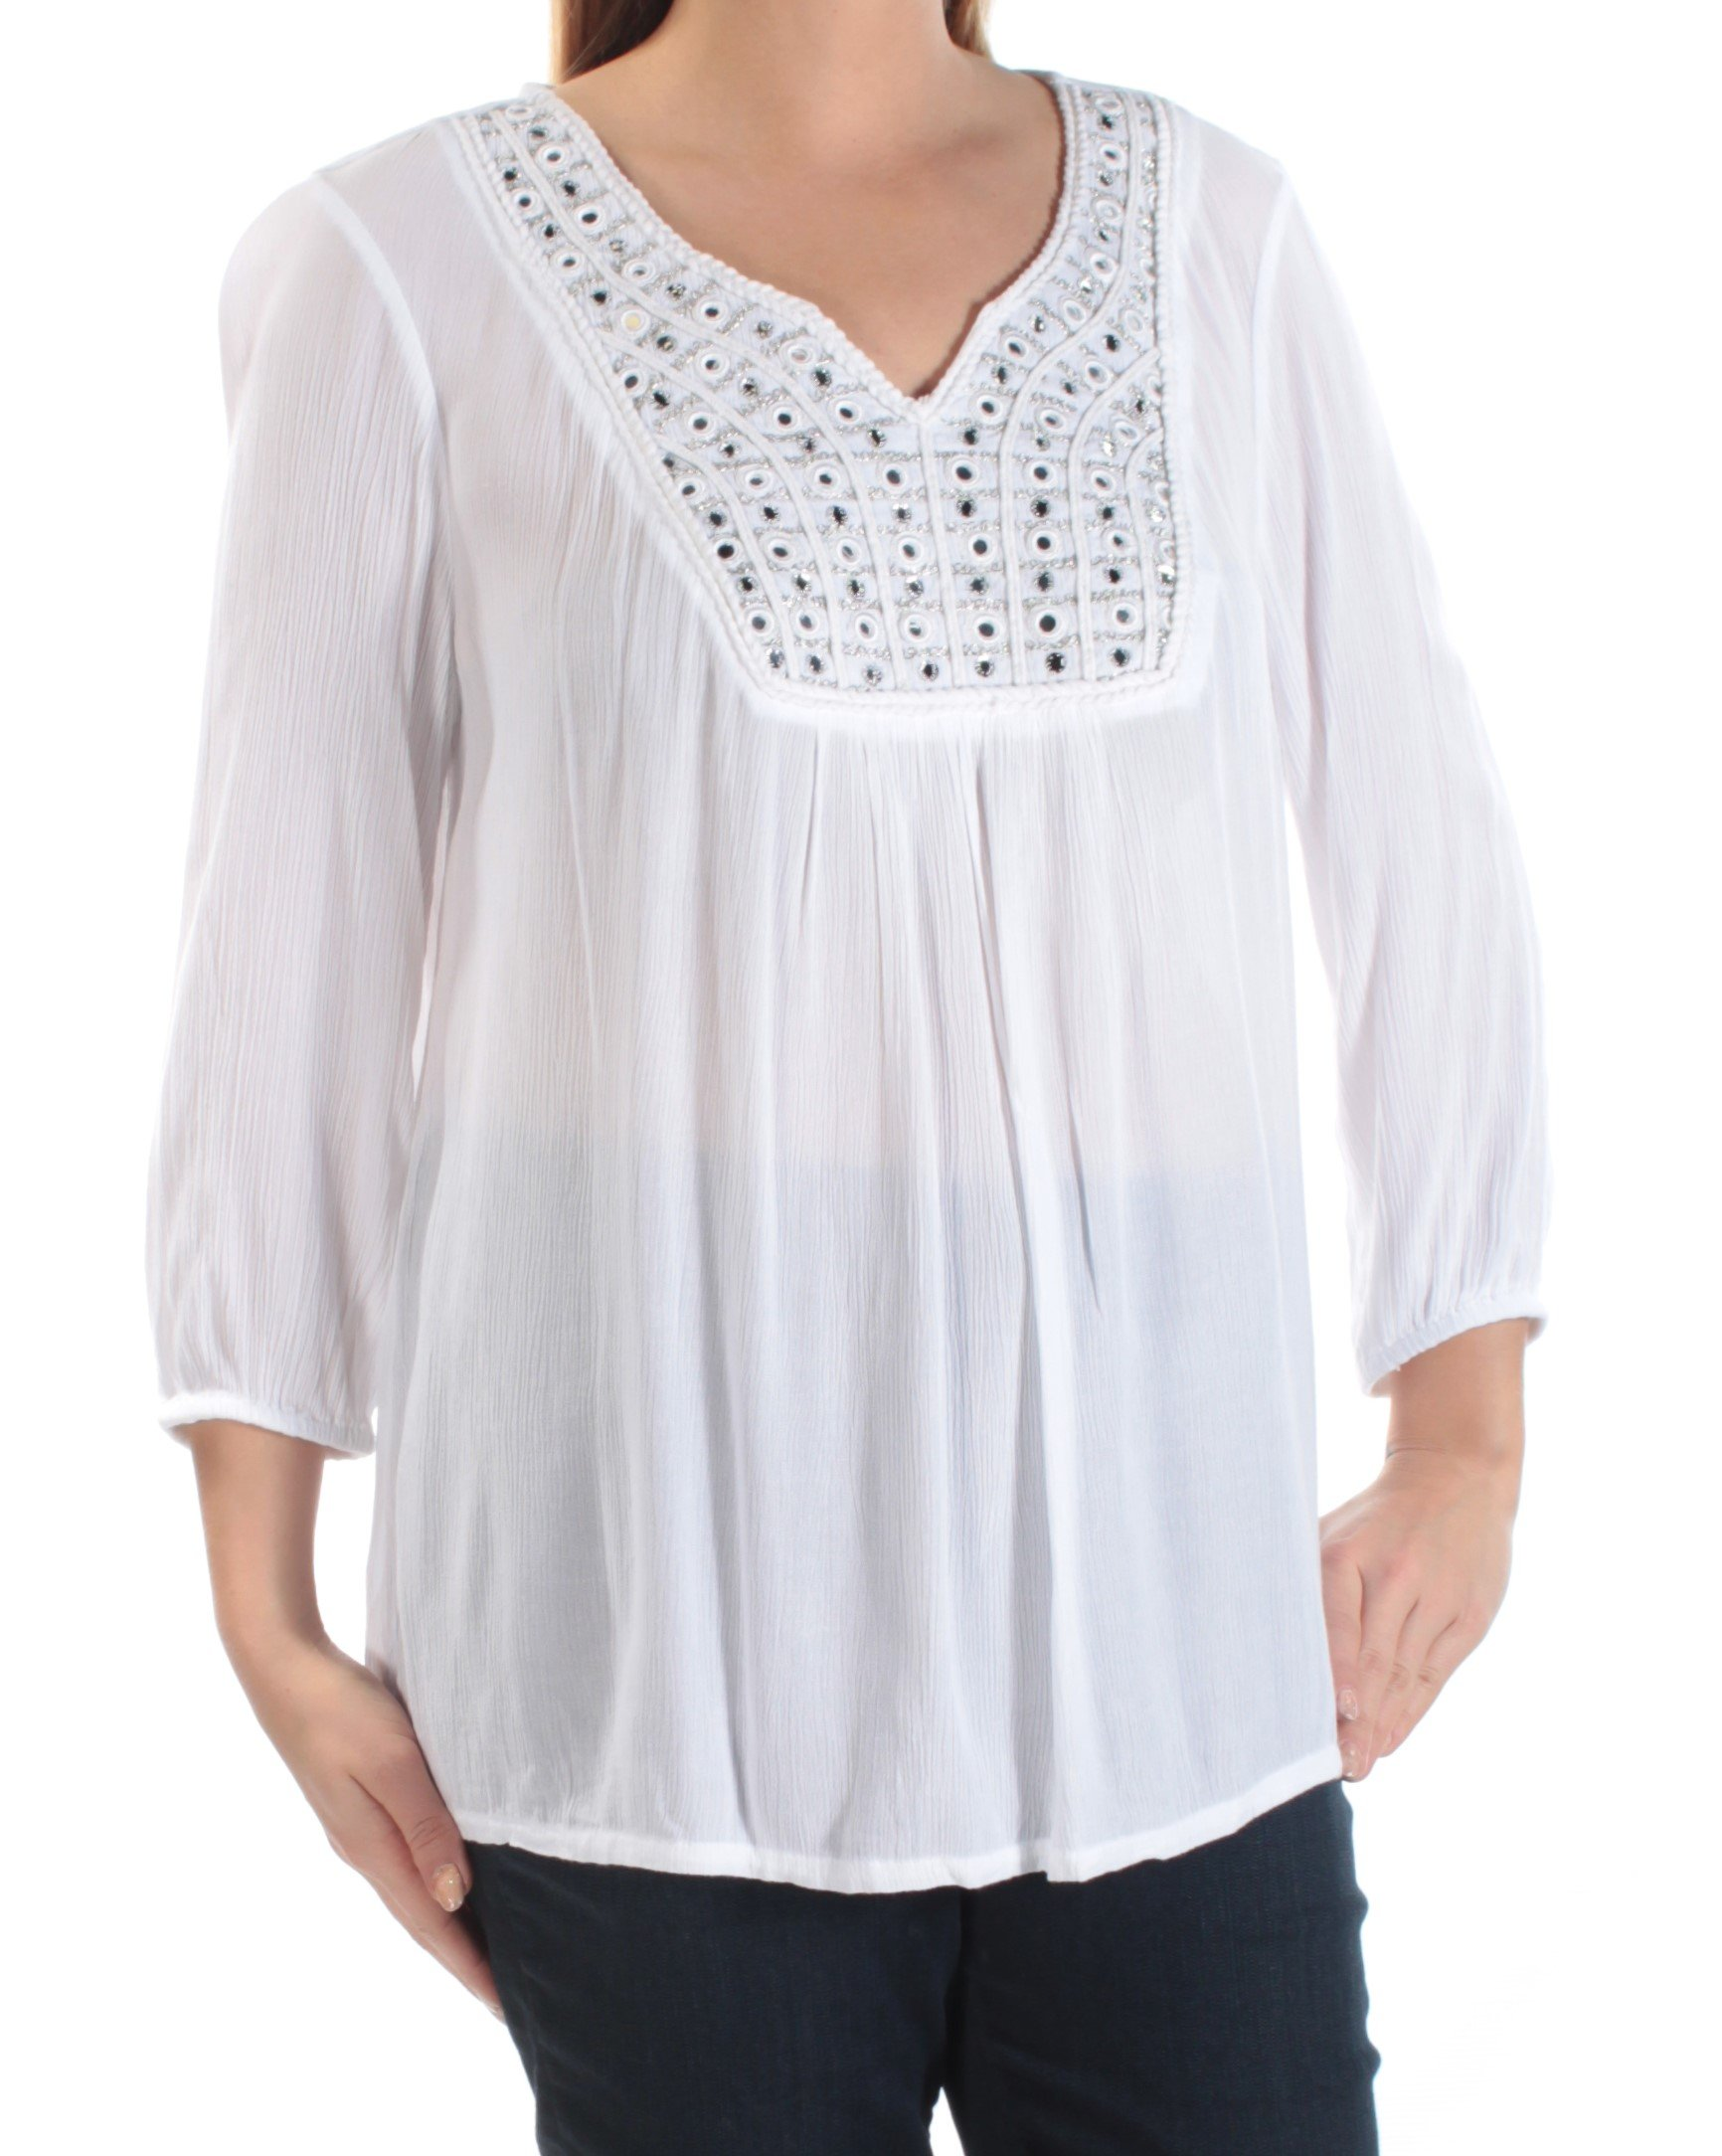 Style & Co.. Womens Petites Metallic Embellished Peasant Top White PL